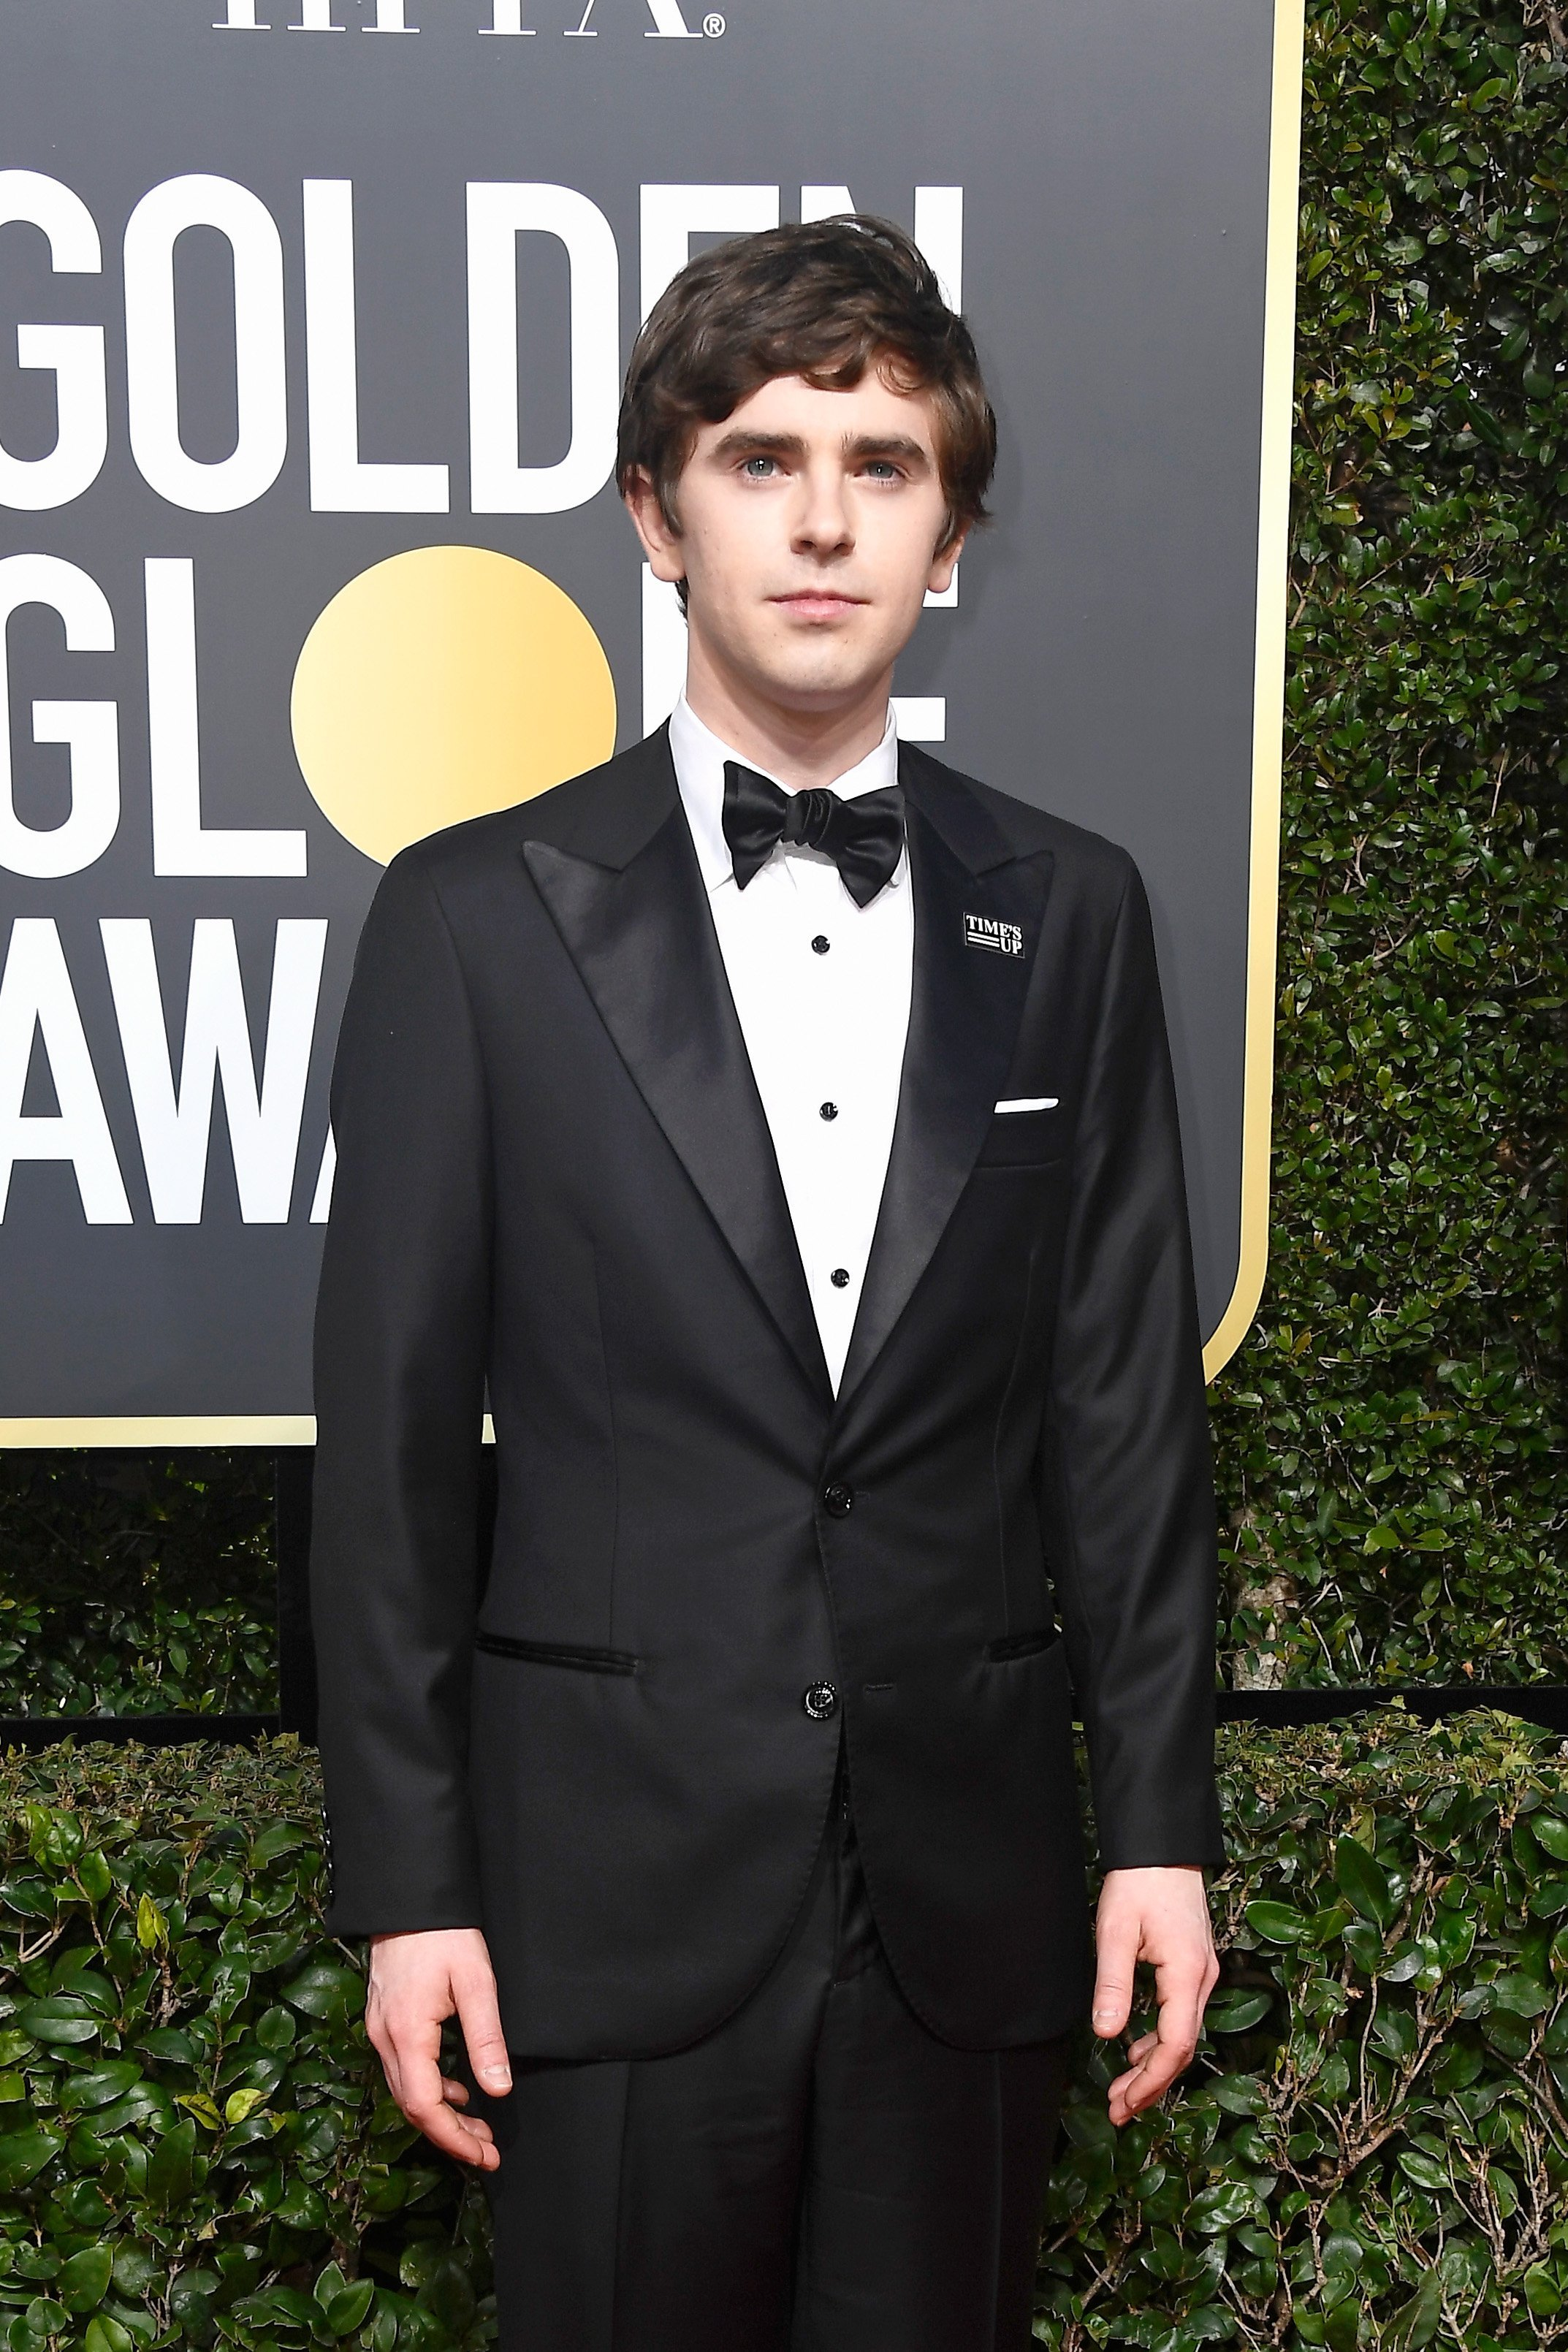 Actor Freddie Highmore attends The 75th Annual Golden Globe Awards at The Beverly Hilton Hotel | Source: Getty Images